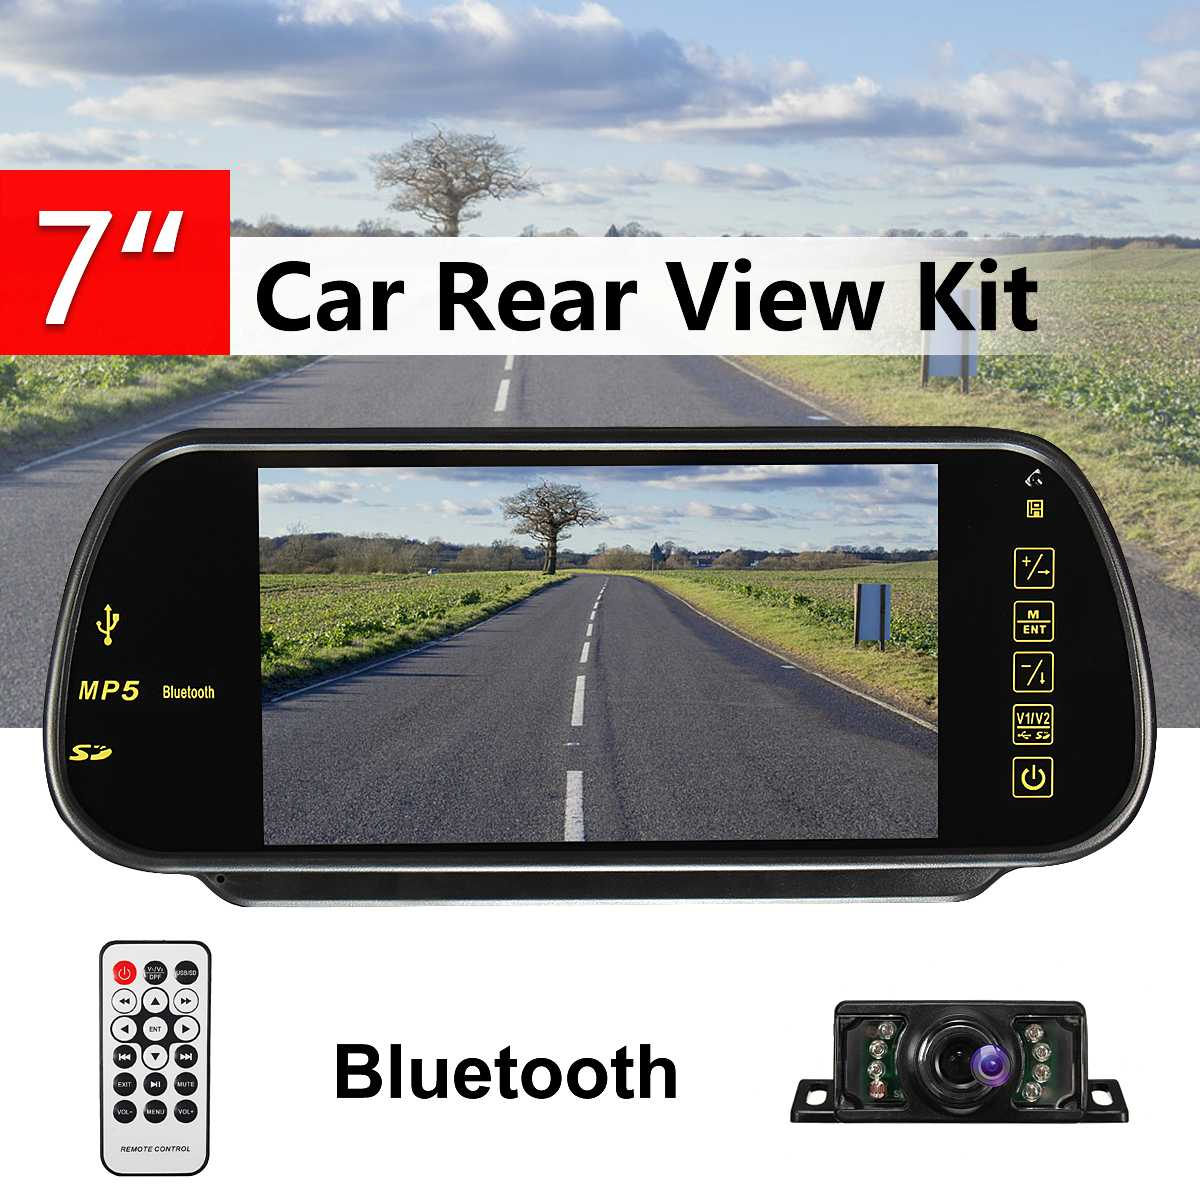 7 Inch TFT LCD Screen bluetooth Car MP5 Player FM Transmitter Auto Reversing Backup Mirror Monitor Car Rear View Camera7 Inch TFT LCD Screen bluetooth Car MP5 Player FM Transmitter Auto Reversing Backup Mirror Monitor Car Rear View Camera